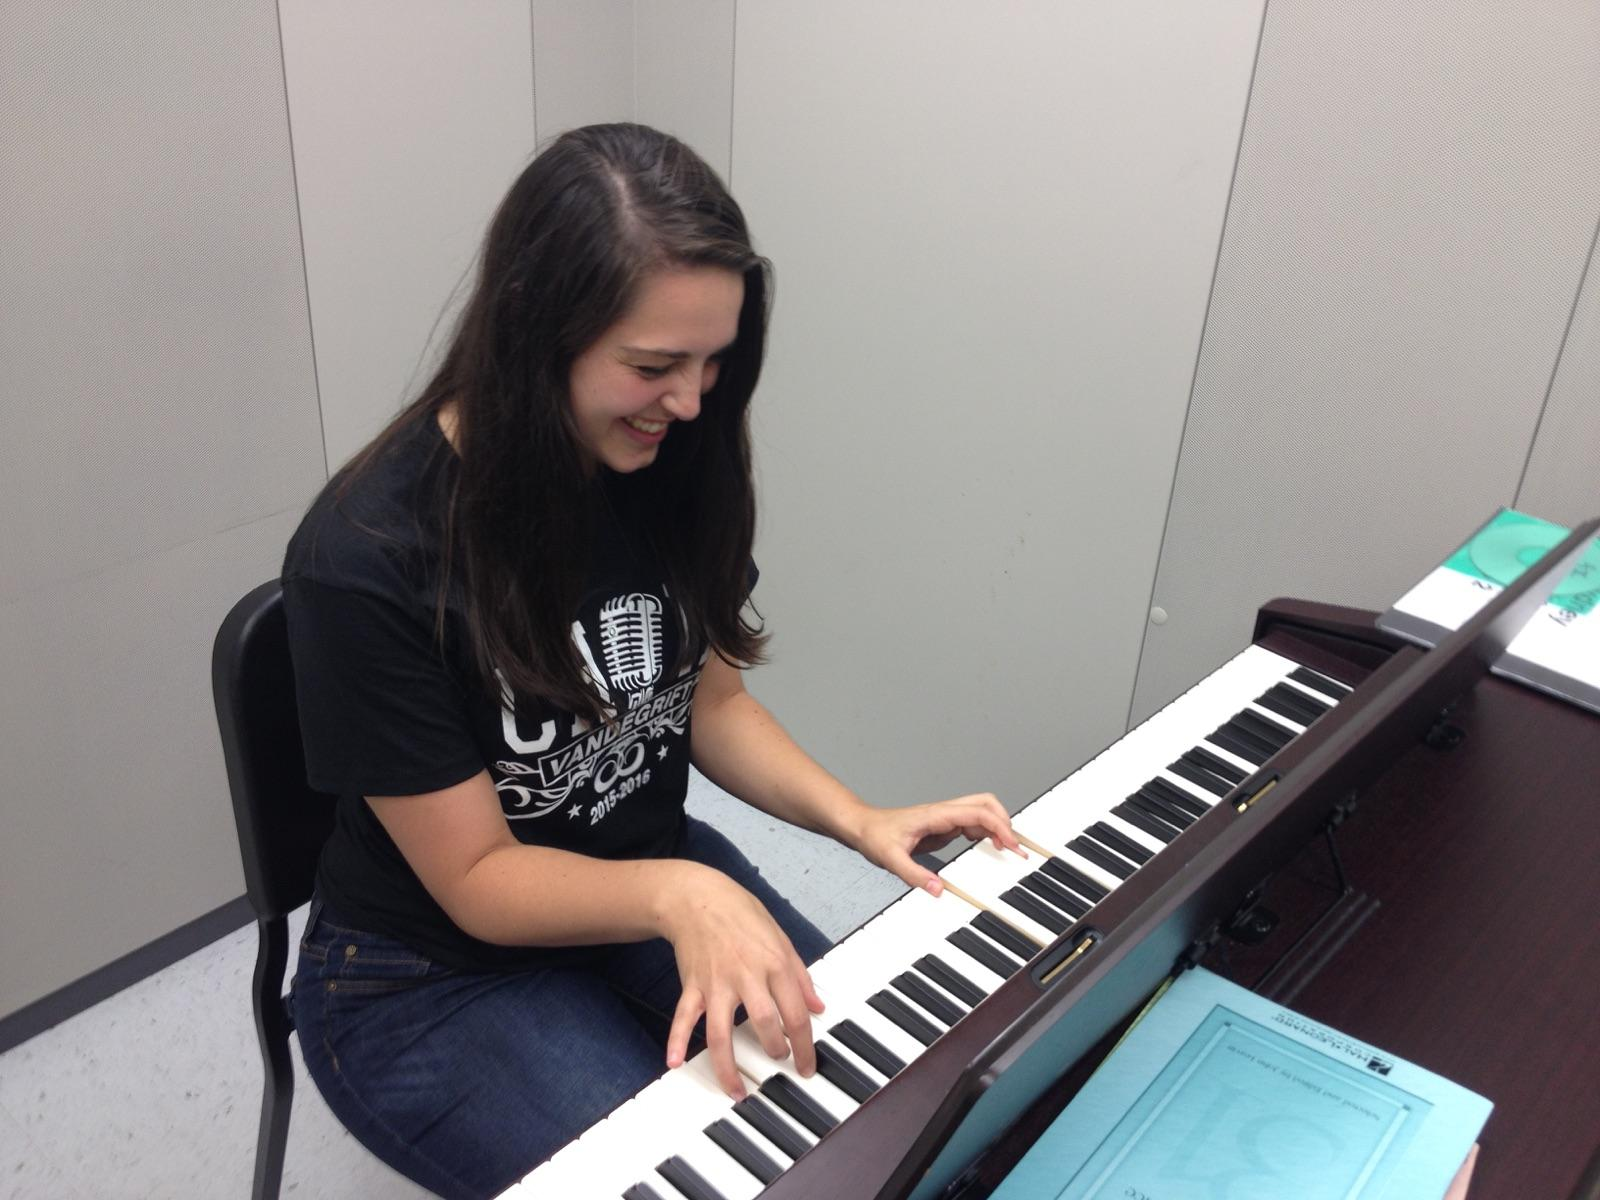 Madison Whitesides practicing her songs on the piano.